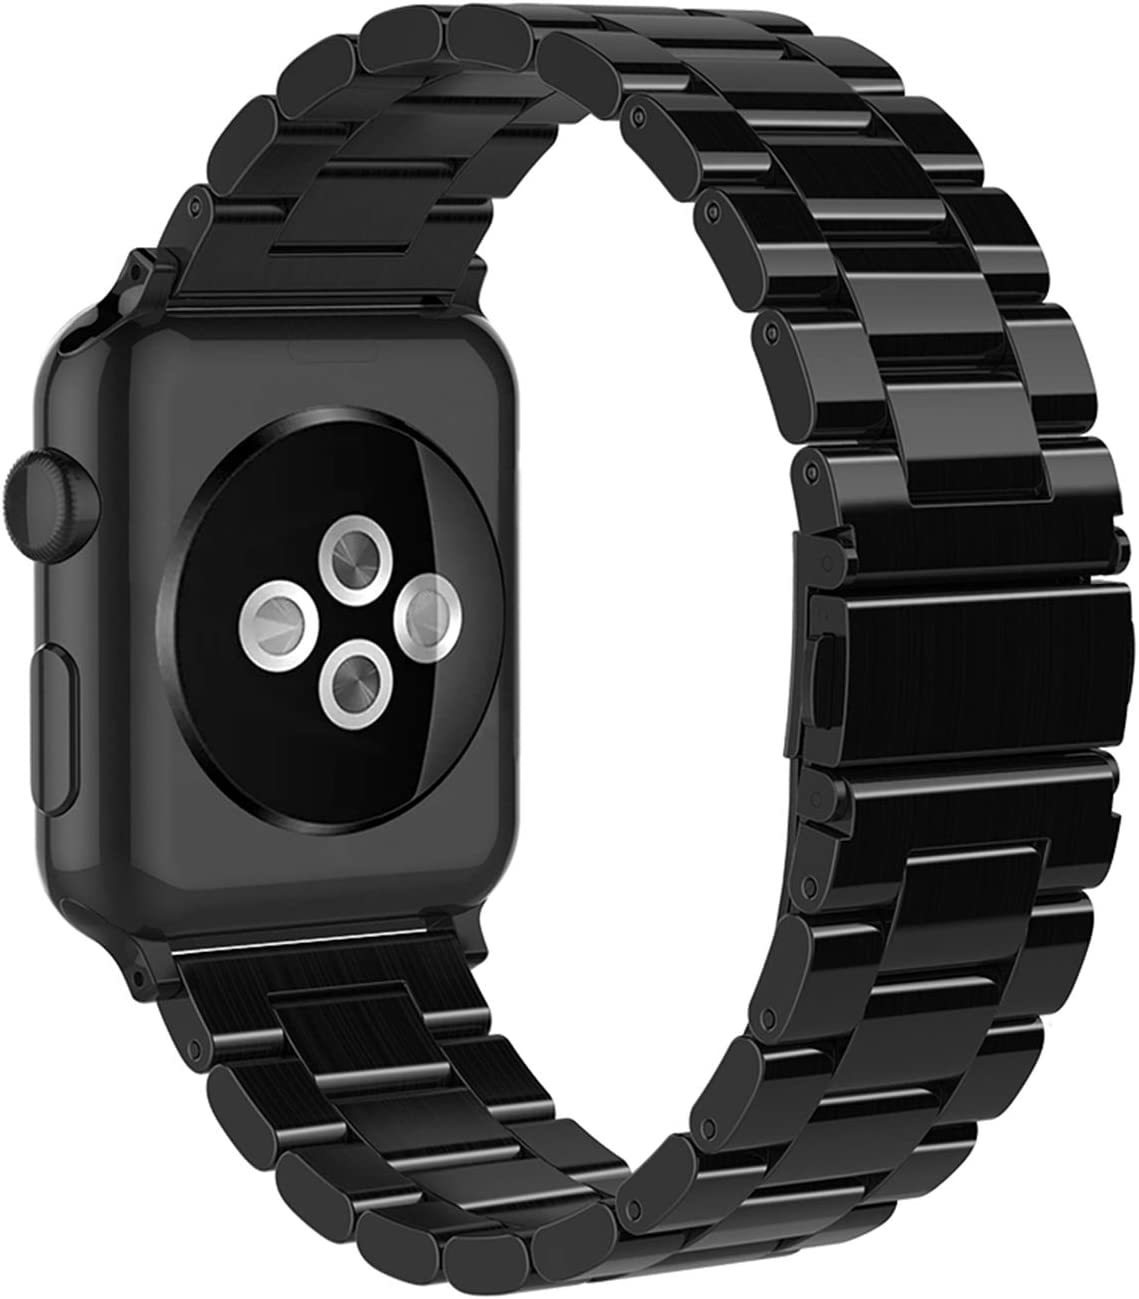 Simpeak Band Compatible with Apple Watch 42mm 44mm Series 6 SE 5 4 3 2 1, Women Men Solid Stainless Steel Business Band Strap Replacement for iWatch 42 44, Bright Black